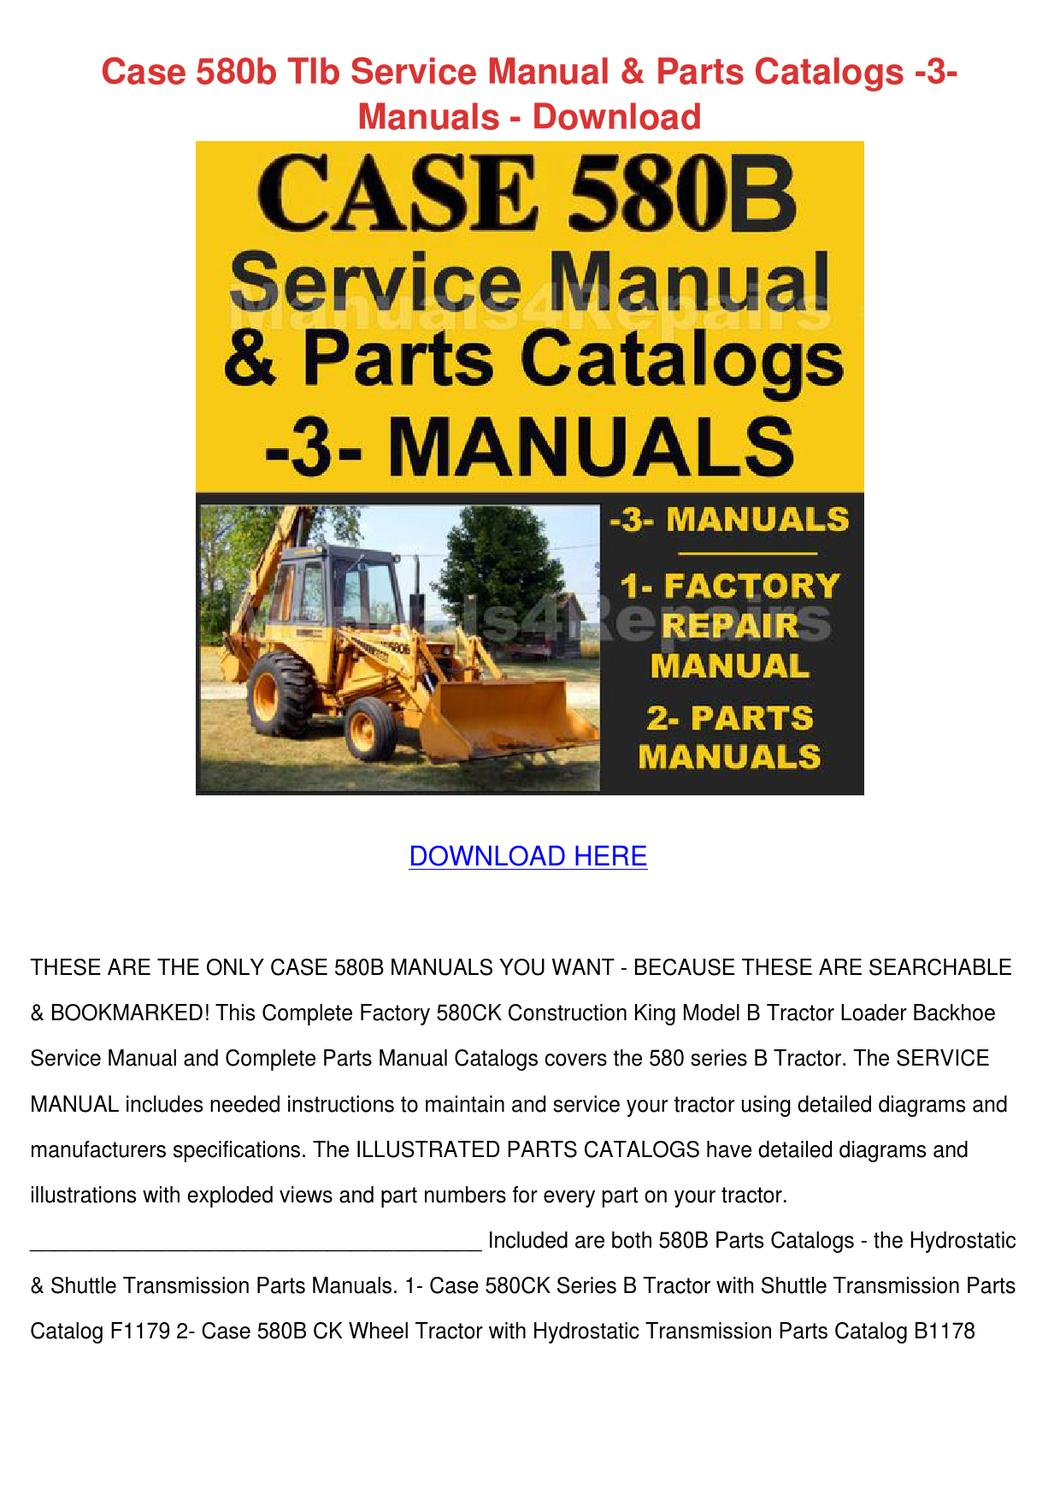 case 580b tlb service manual parts catalogs 3 by airport service manual part 7 Owner's Manual